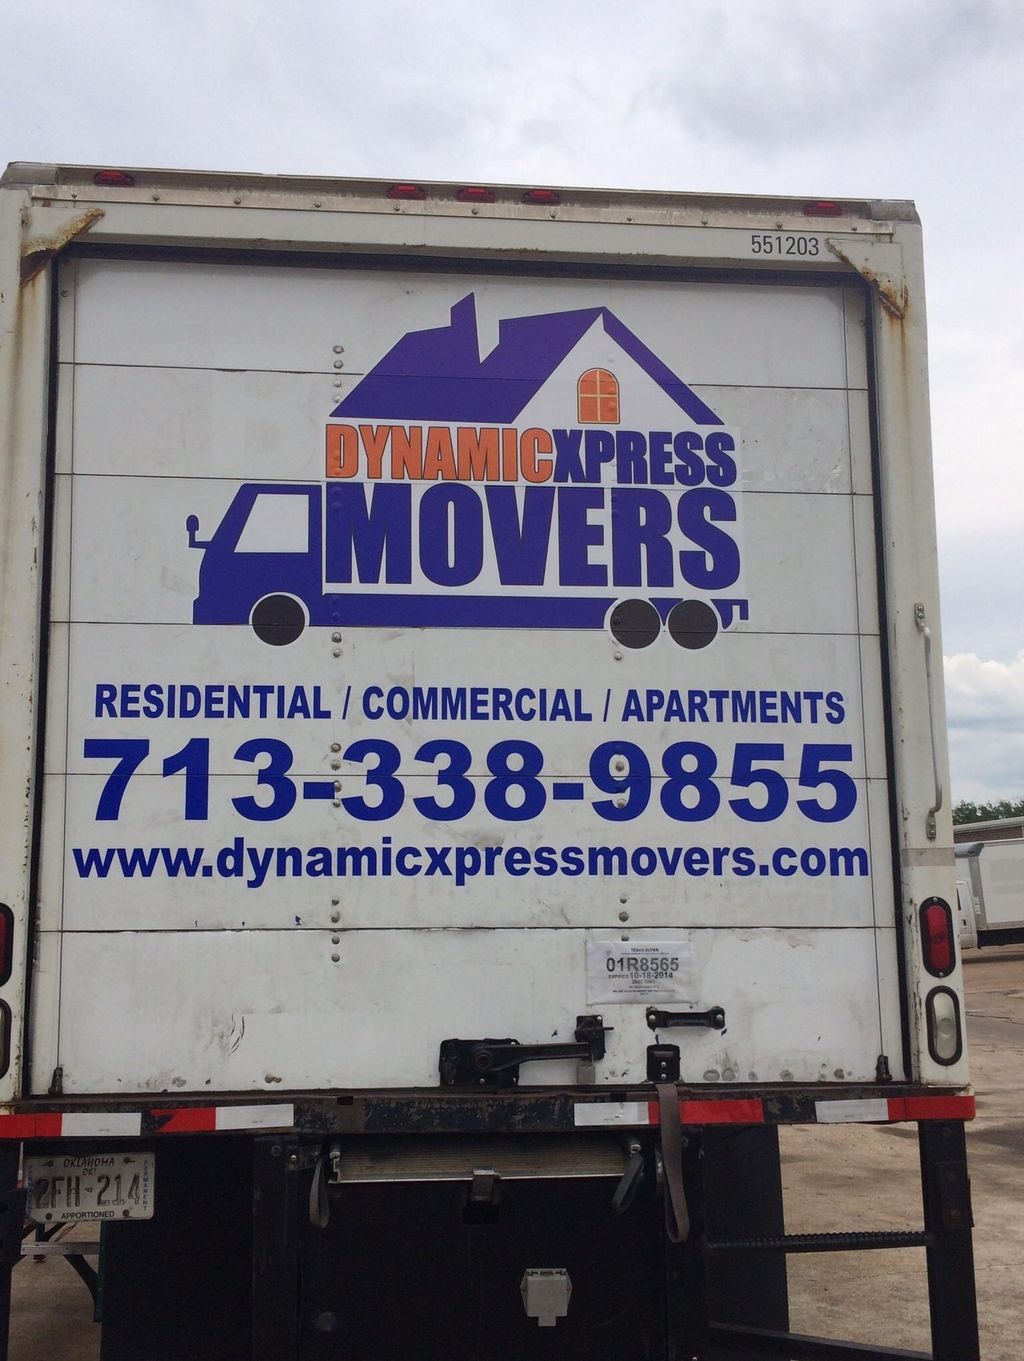 Dynamic Xpress Movers